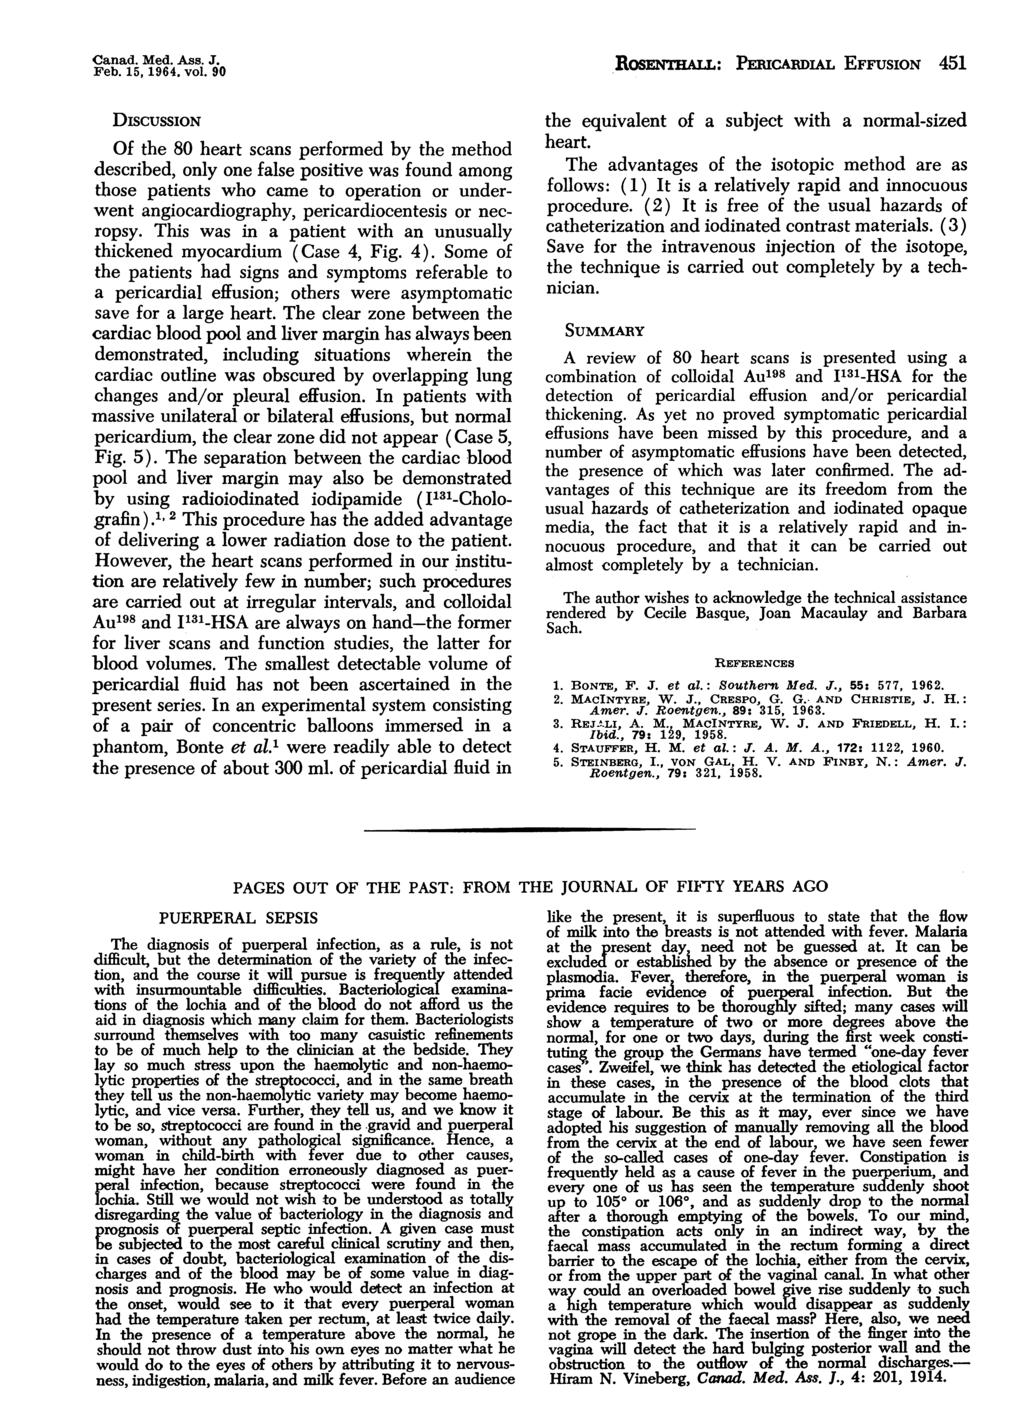 Canad. Med. Ass..* Ros.'raAn.: PERICARDIAL EFFUSION 451 Feb. 15, 1964. vol.